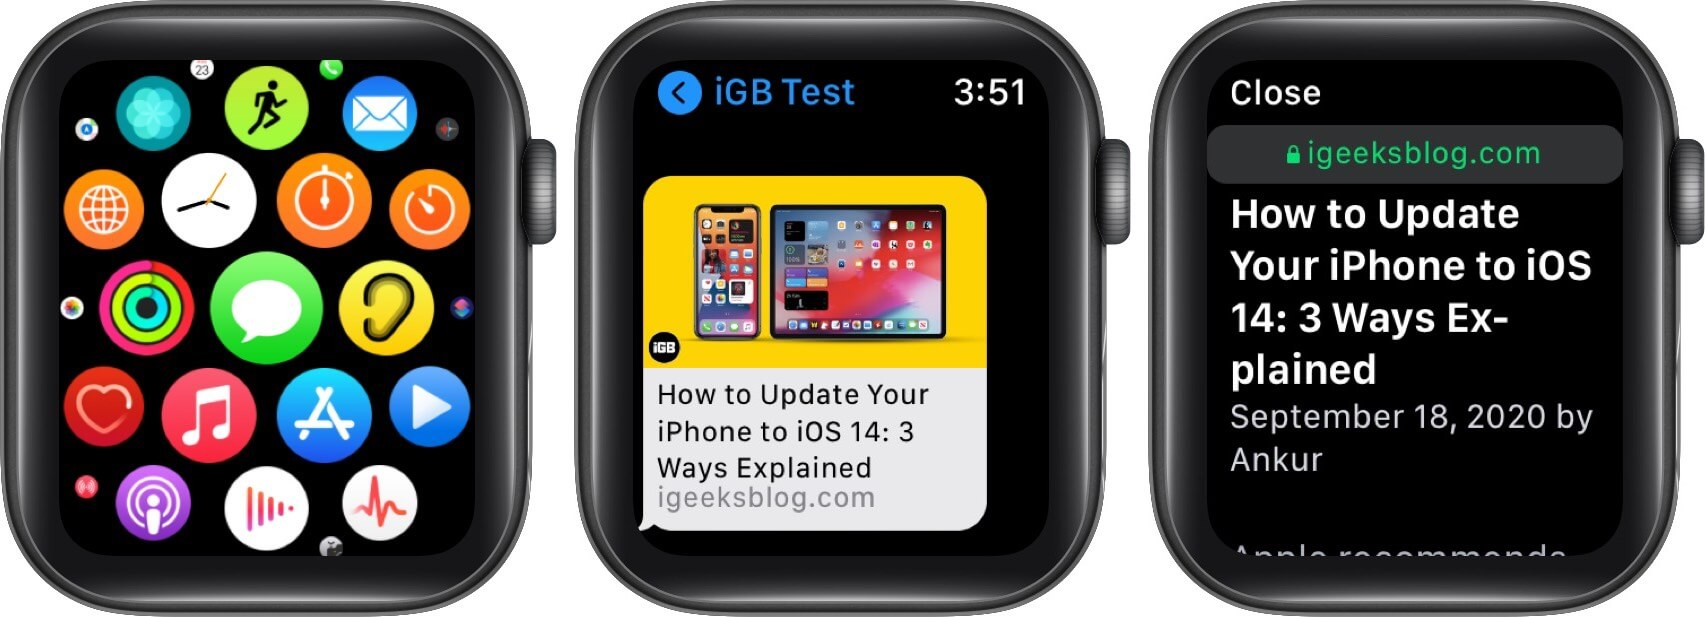 open messages app and tap on link to search the web on apple watch